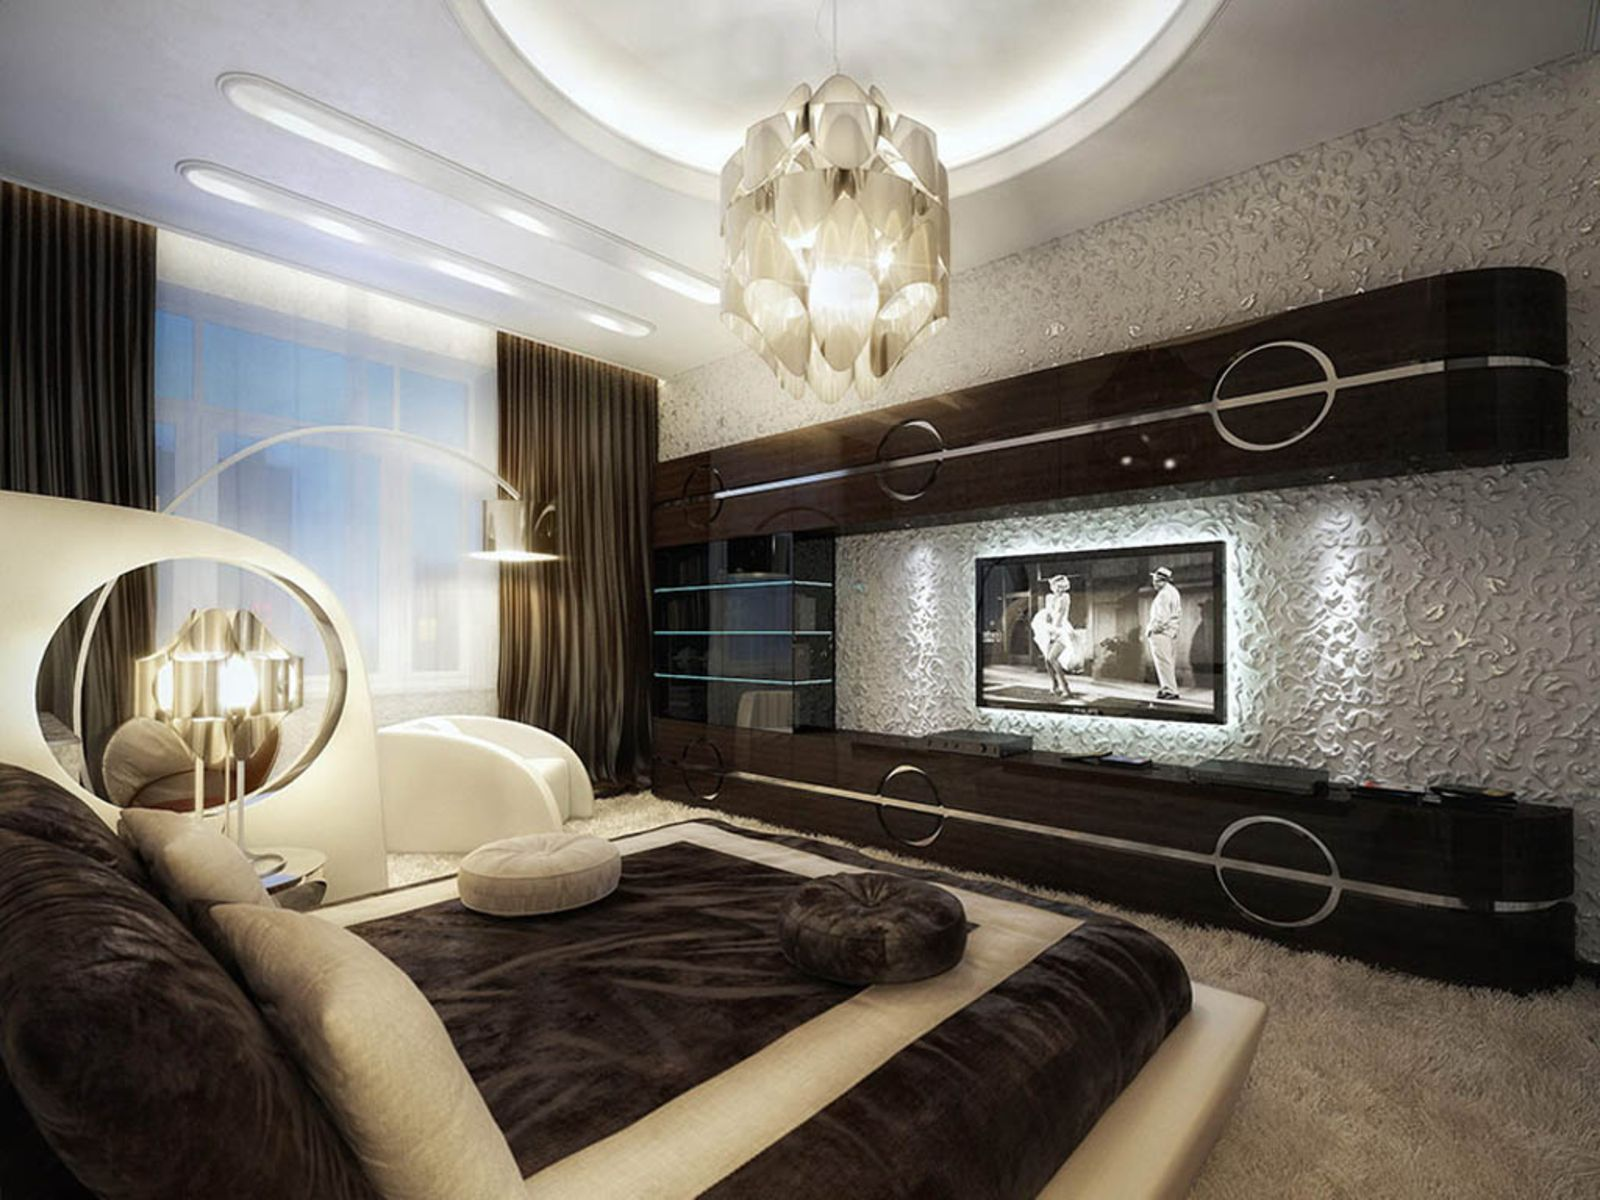 Interior Design Of Bedrooms India Photo  Design Bed  Pinterest New Interior Design For Bedroom In India Design Ideas